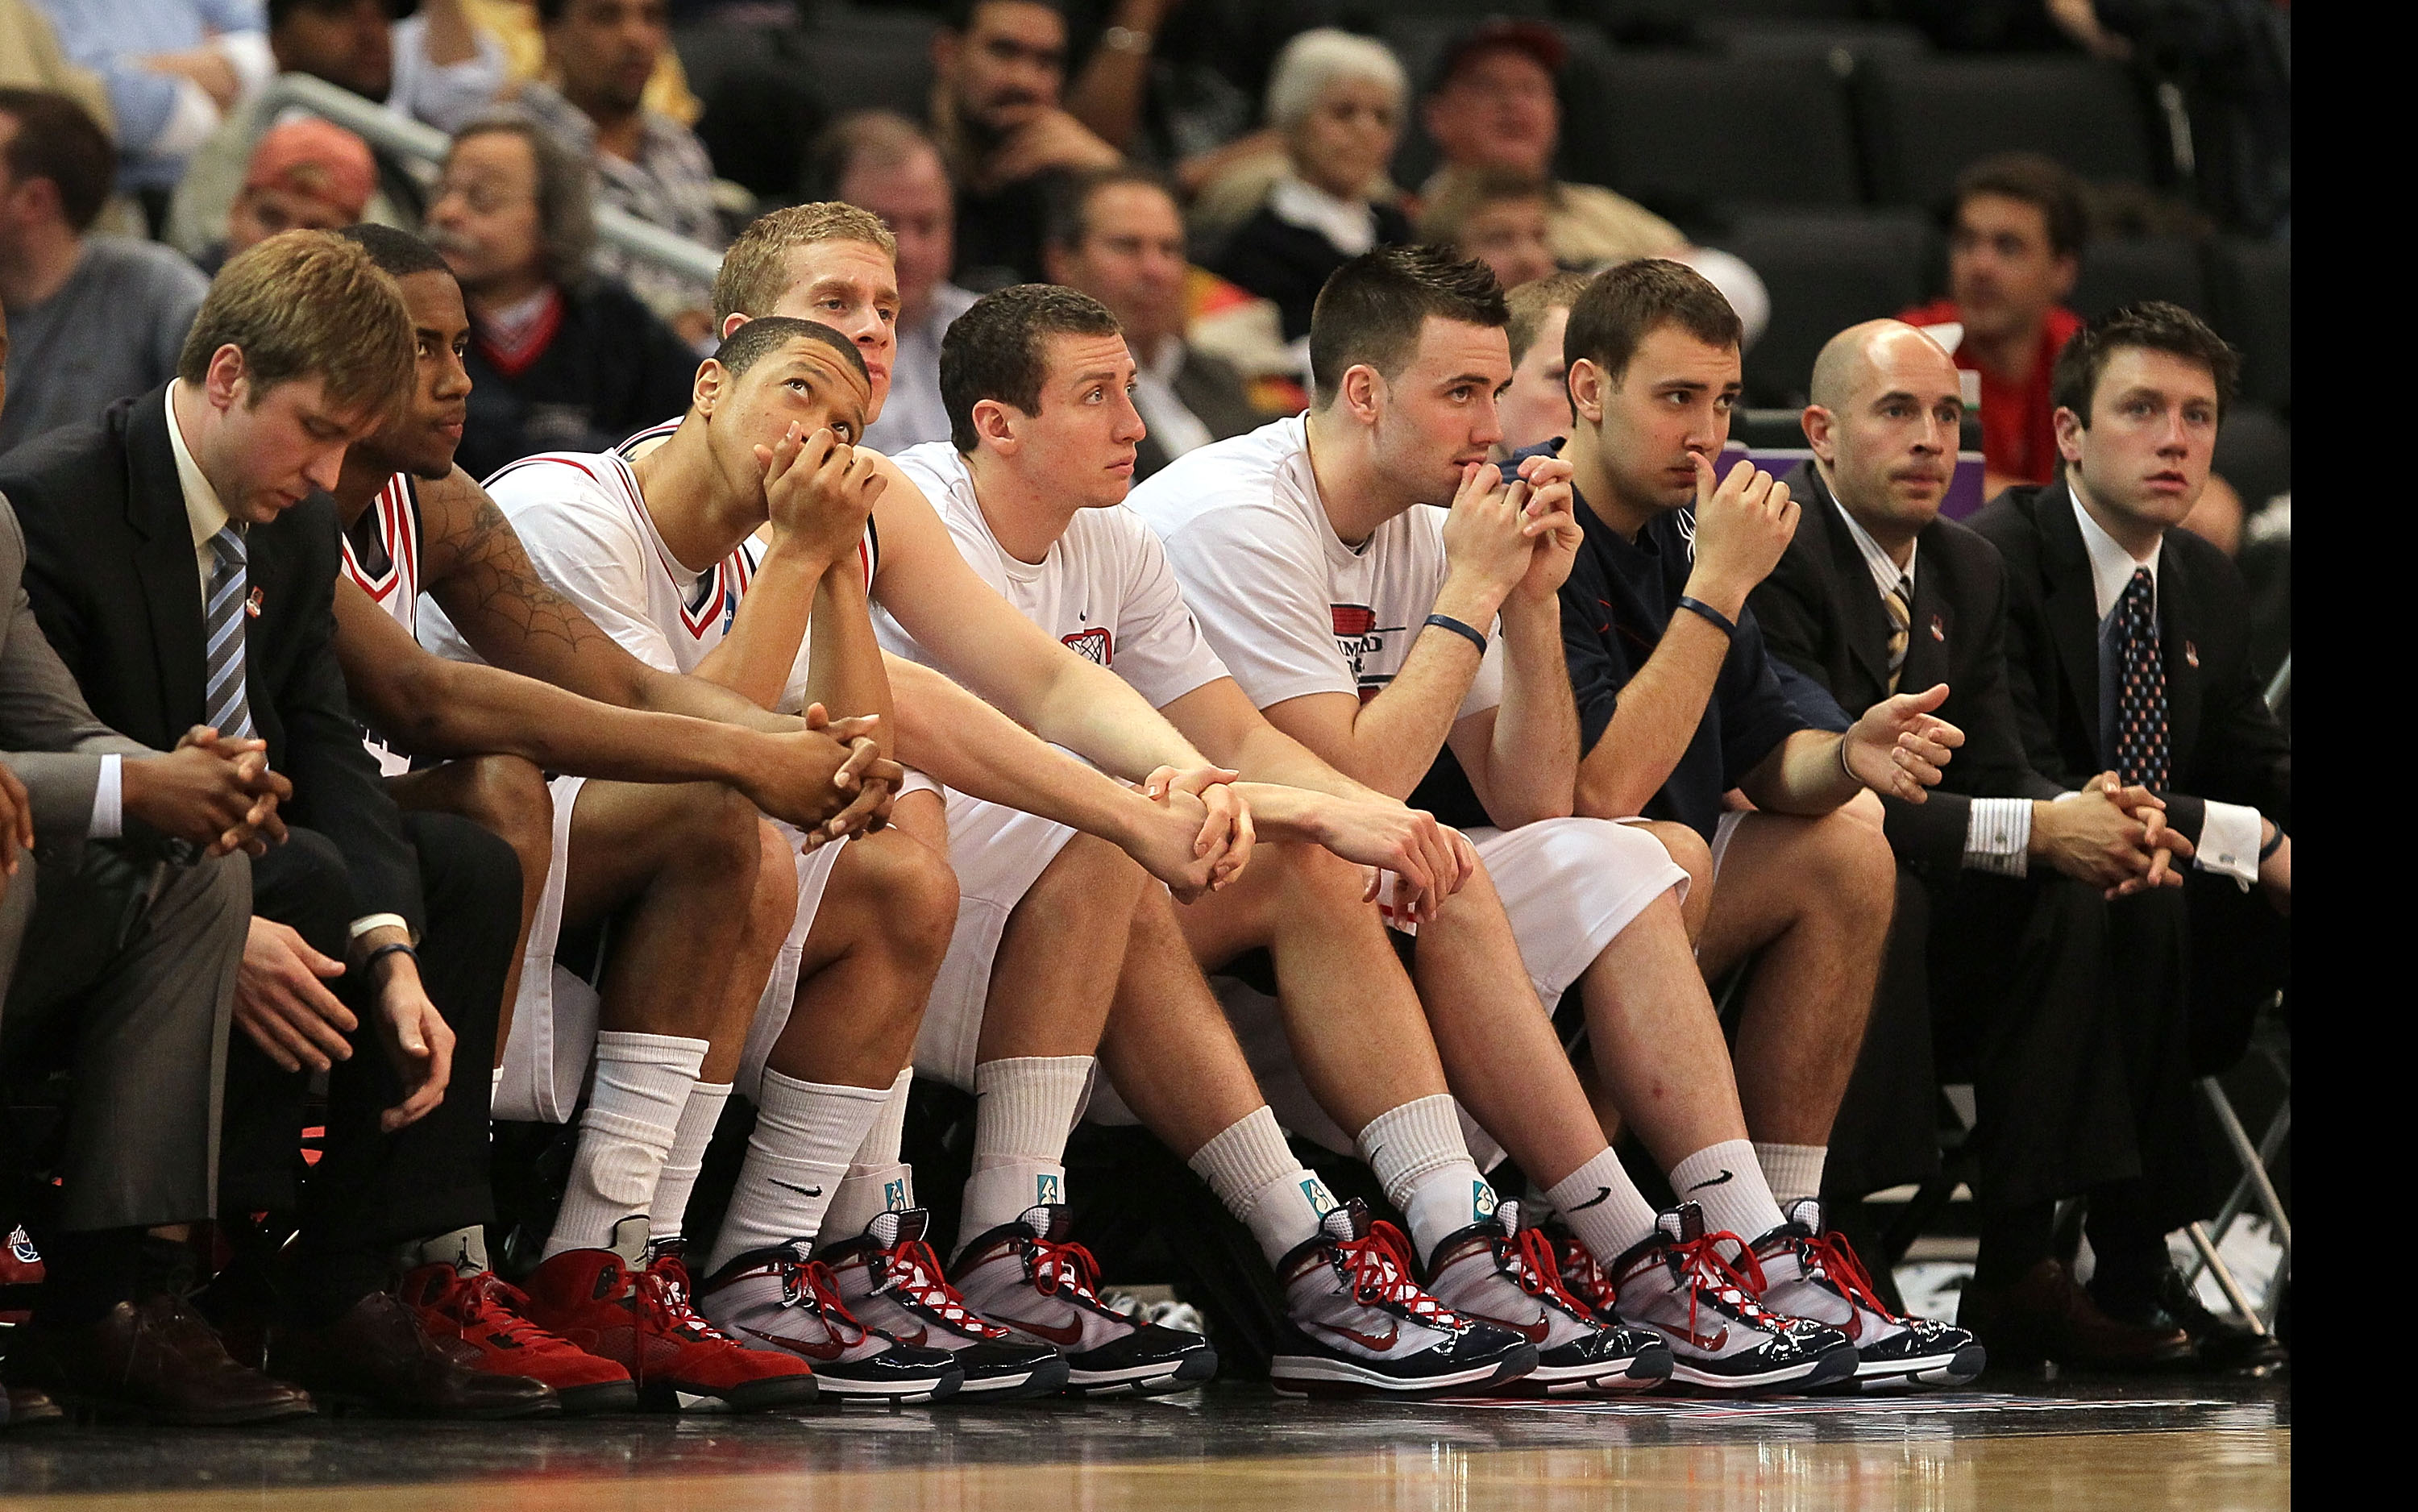 PROVIDENCE, RI - MARCH 18:  The bench of the Richmond Spiders reacts in the final moments of a 80-71 loss to the Saint Mary's Gaels during the first round of the 2010 NCAA men's basketball tournament at Dunkin' Donuts Center on March 18, 2010 in Providenc